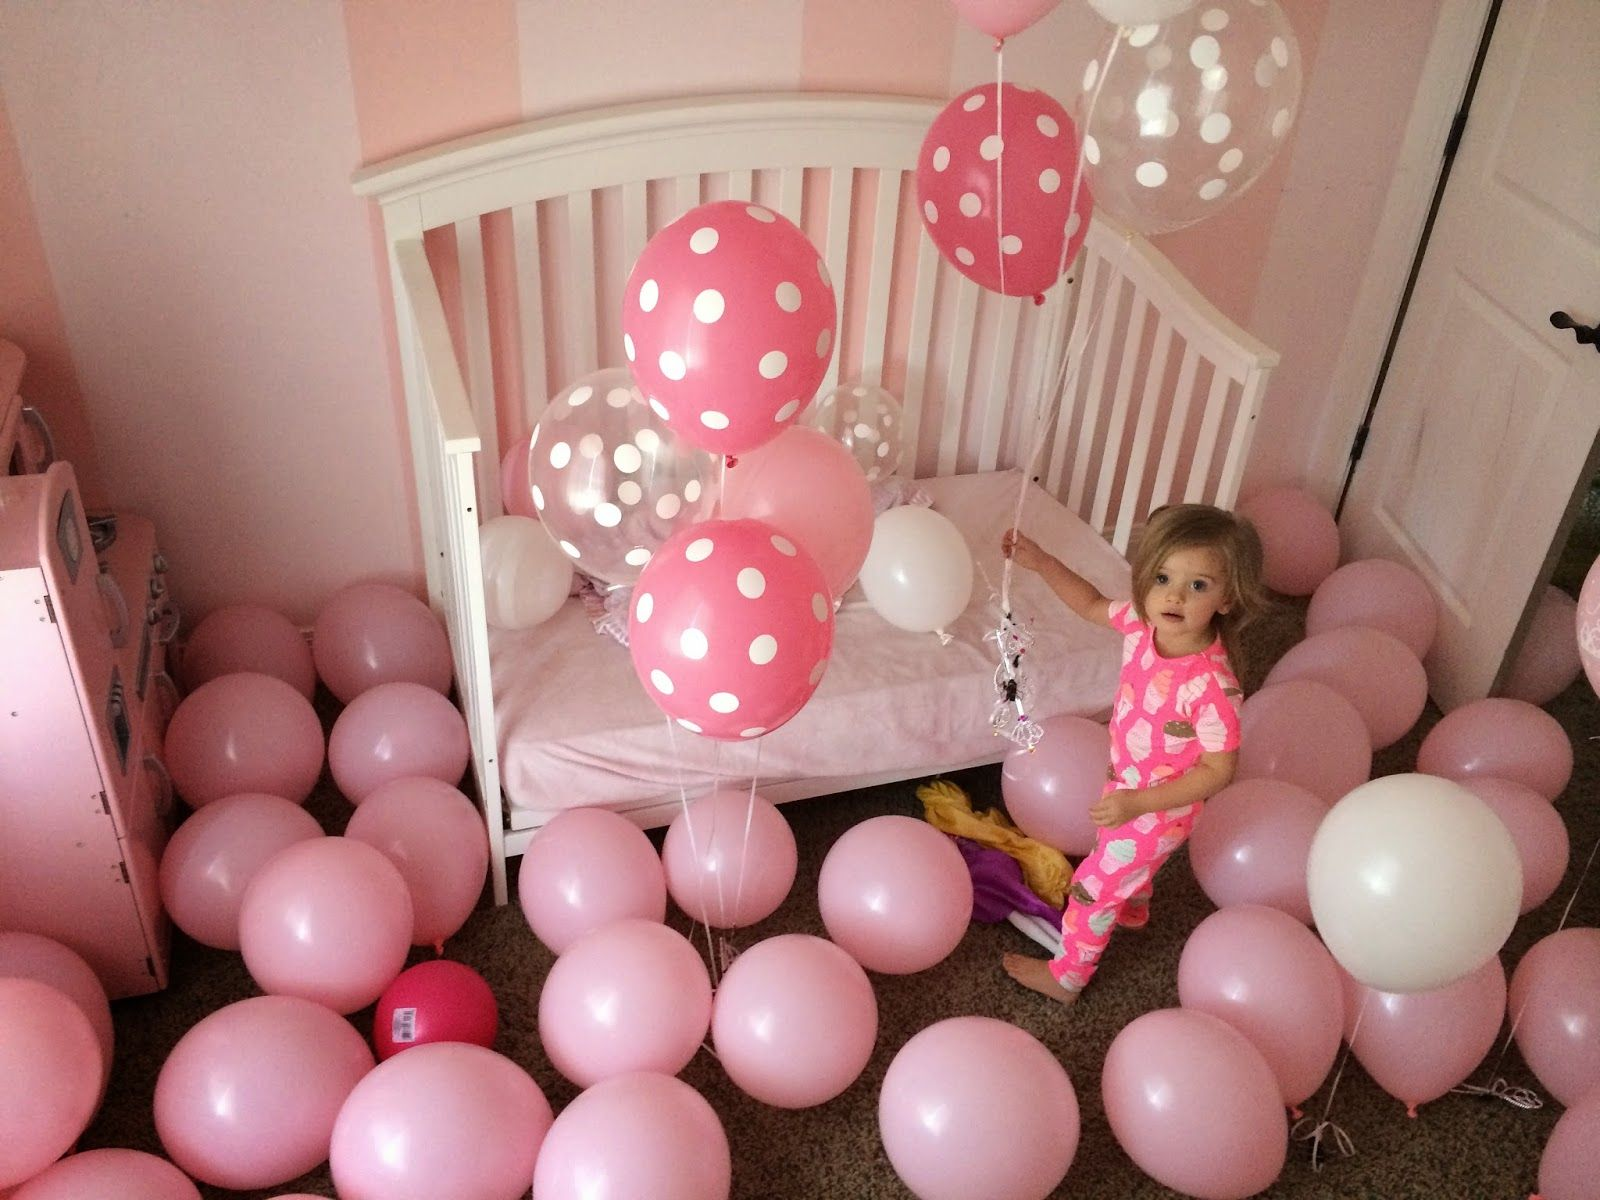 fill a toddlers room with balloons to wake up to on their